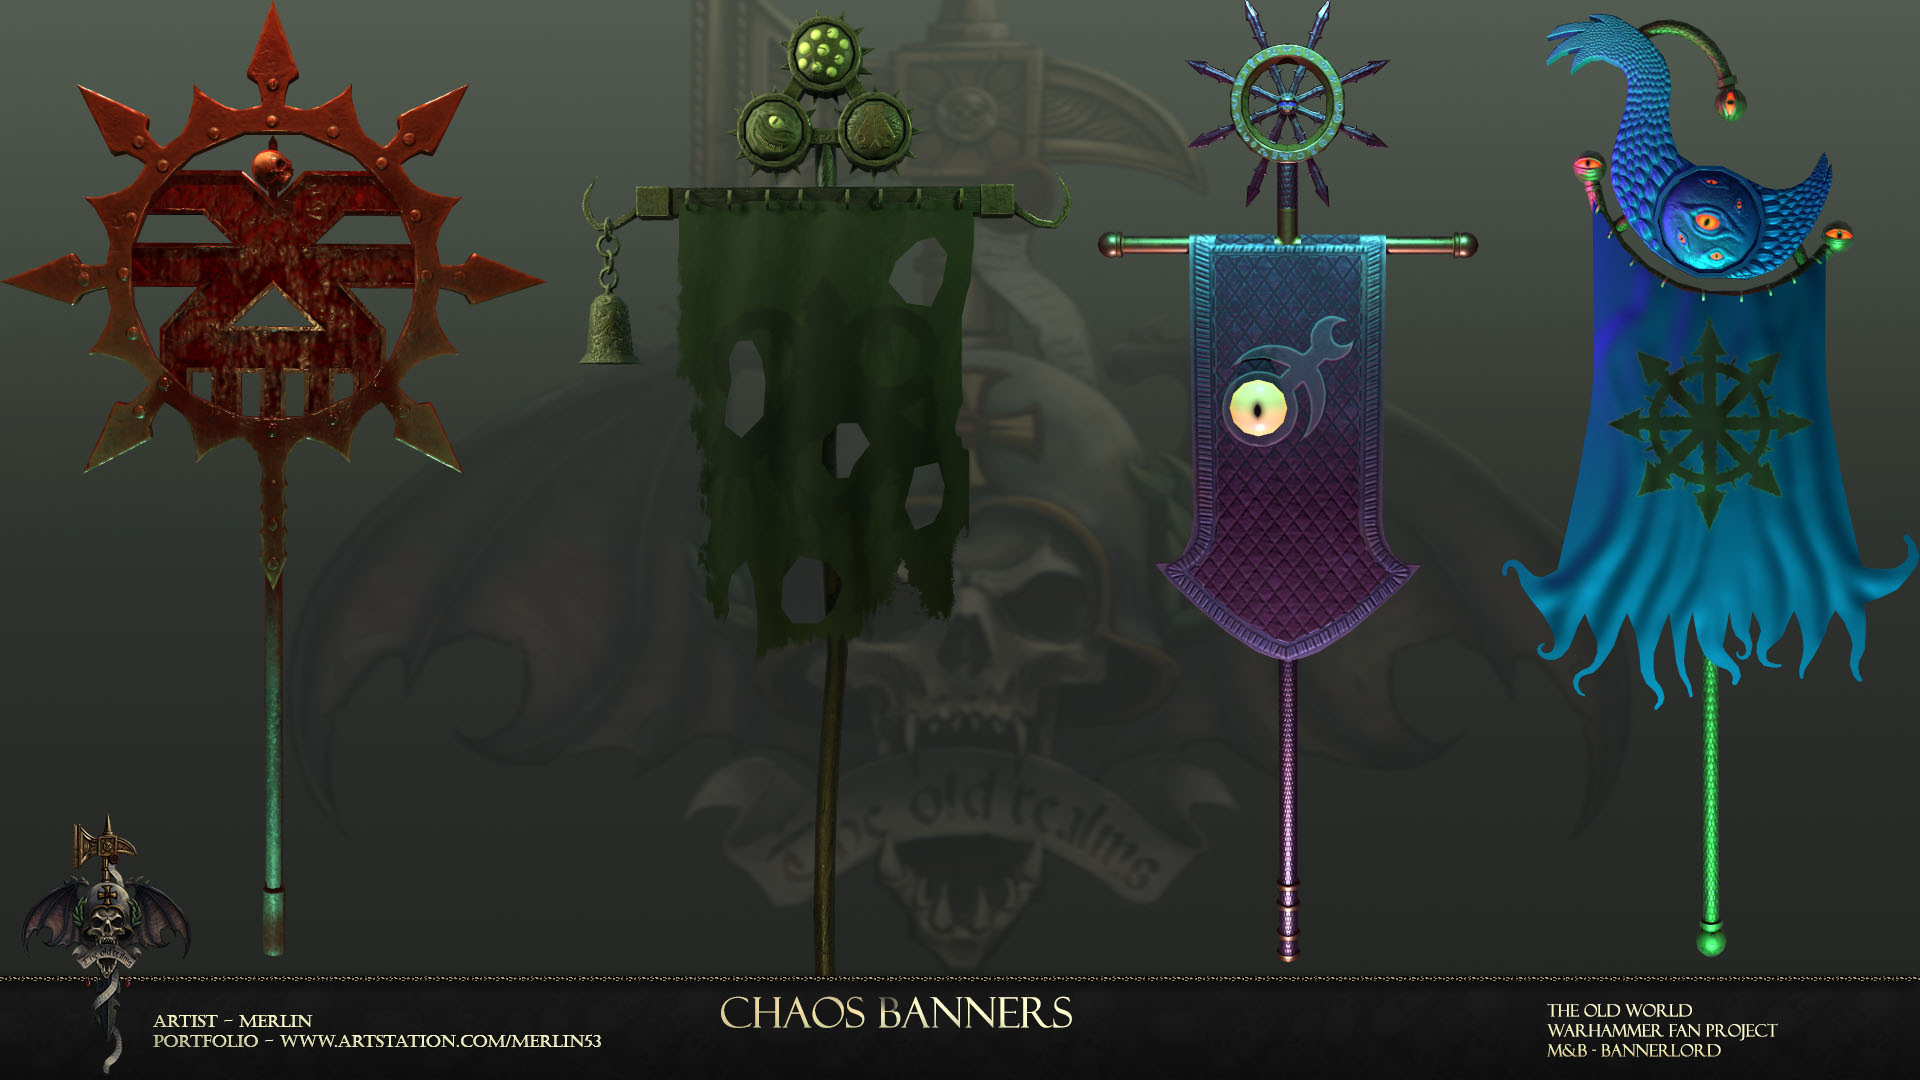 Chaos banners